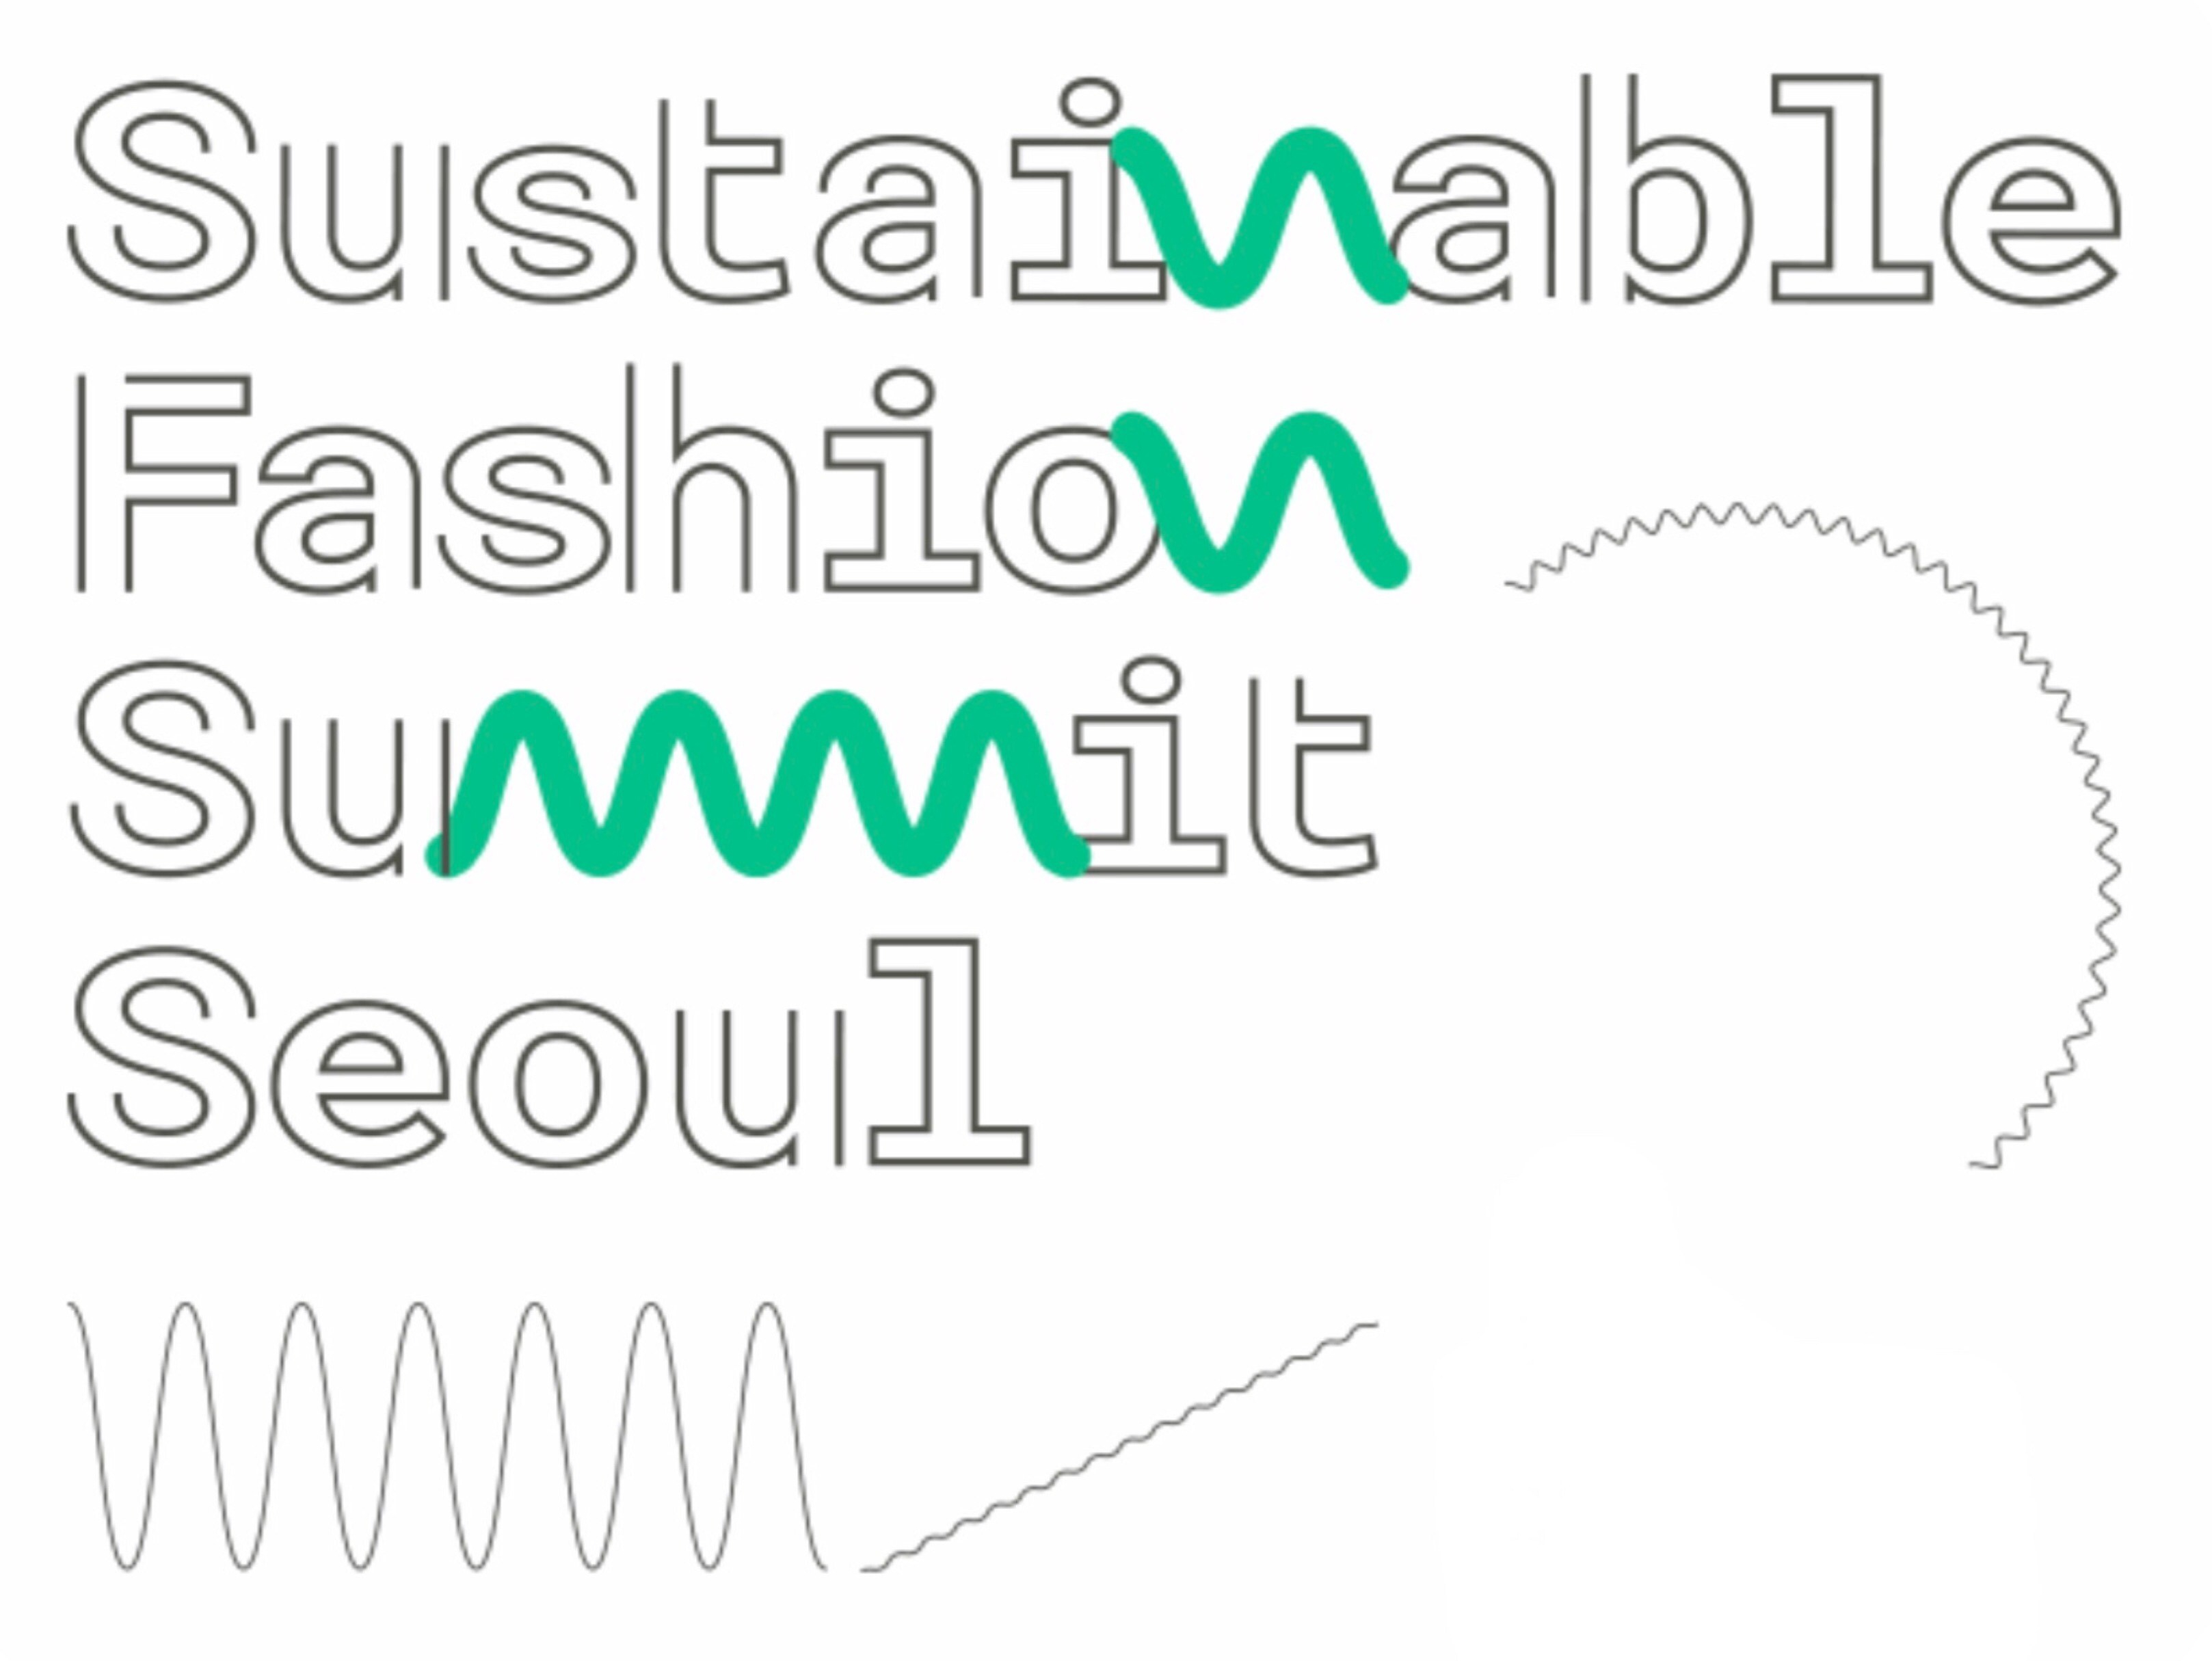 Sustainable Fashion Summit Seoul